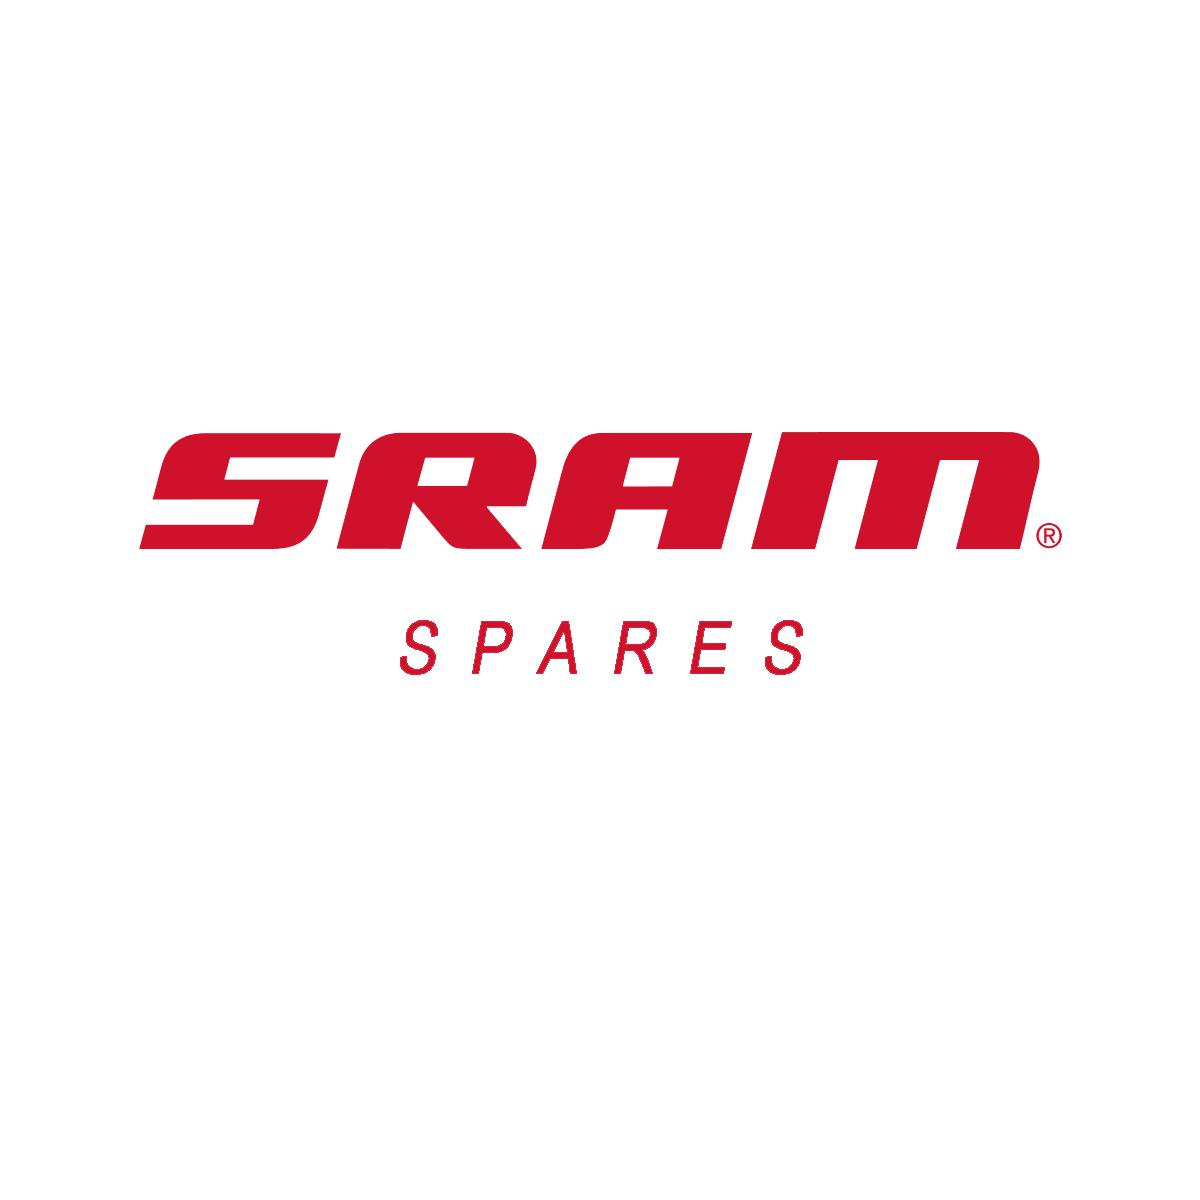 SRAM SPARE – WHEEL SPARE PARTS HUB BEARING SET FRONT DOUBLE TIME INCLUDES 2-23327) – X0 HUBS/RISE 60 (B1)/ROAM 30/ROAM 40/ROAM 50/60(B1)/RAIL 40: